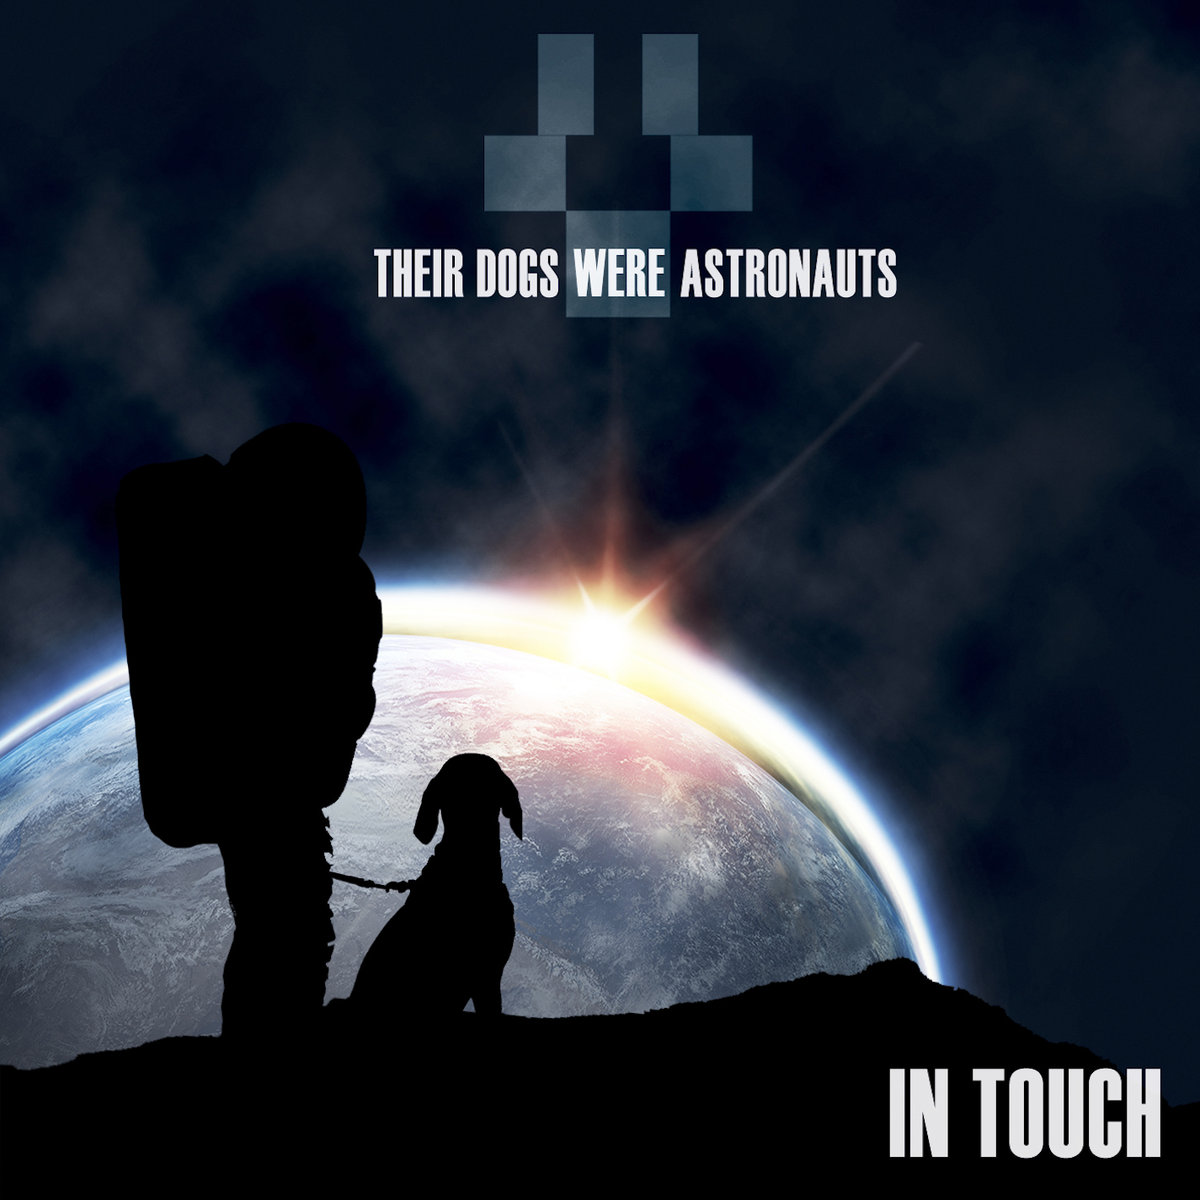 Their Dogs Were Astronauts - Systematic Warnings Pt.1 @ 'In Touch' album (instrumental metal, metal)